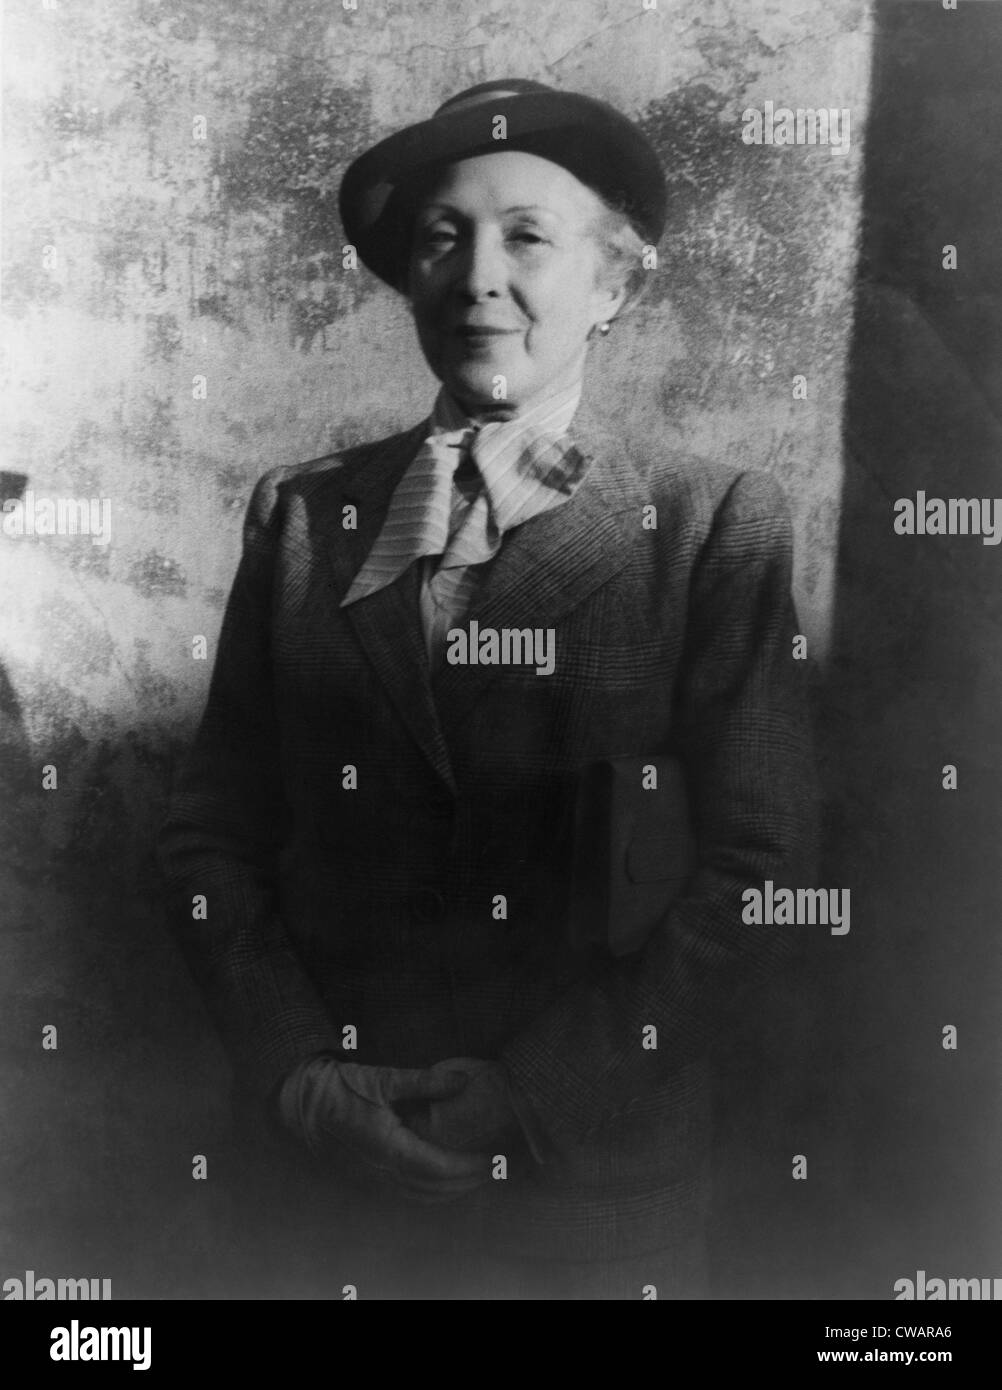 Marie Laurencin (1883-1956), French painter and printmaker who associated with Paris avant- garde and Cubists.  - Stock Image